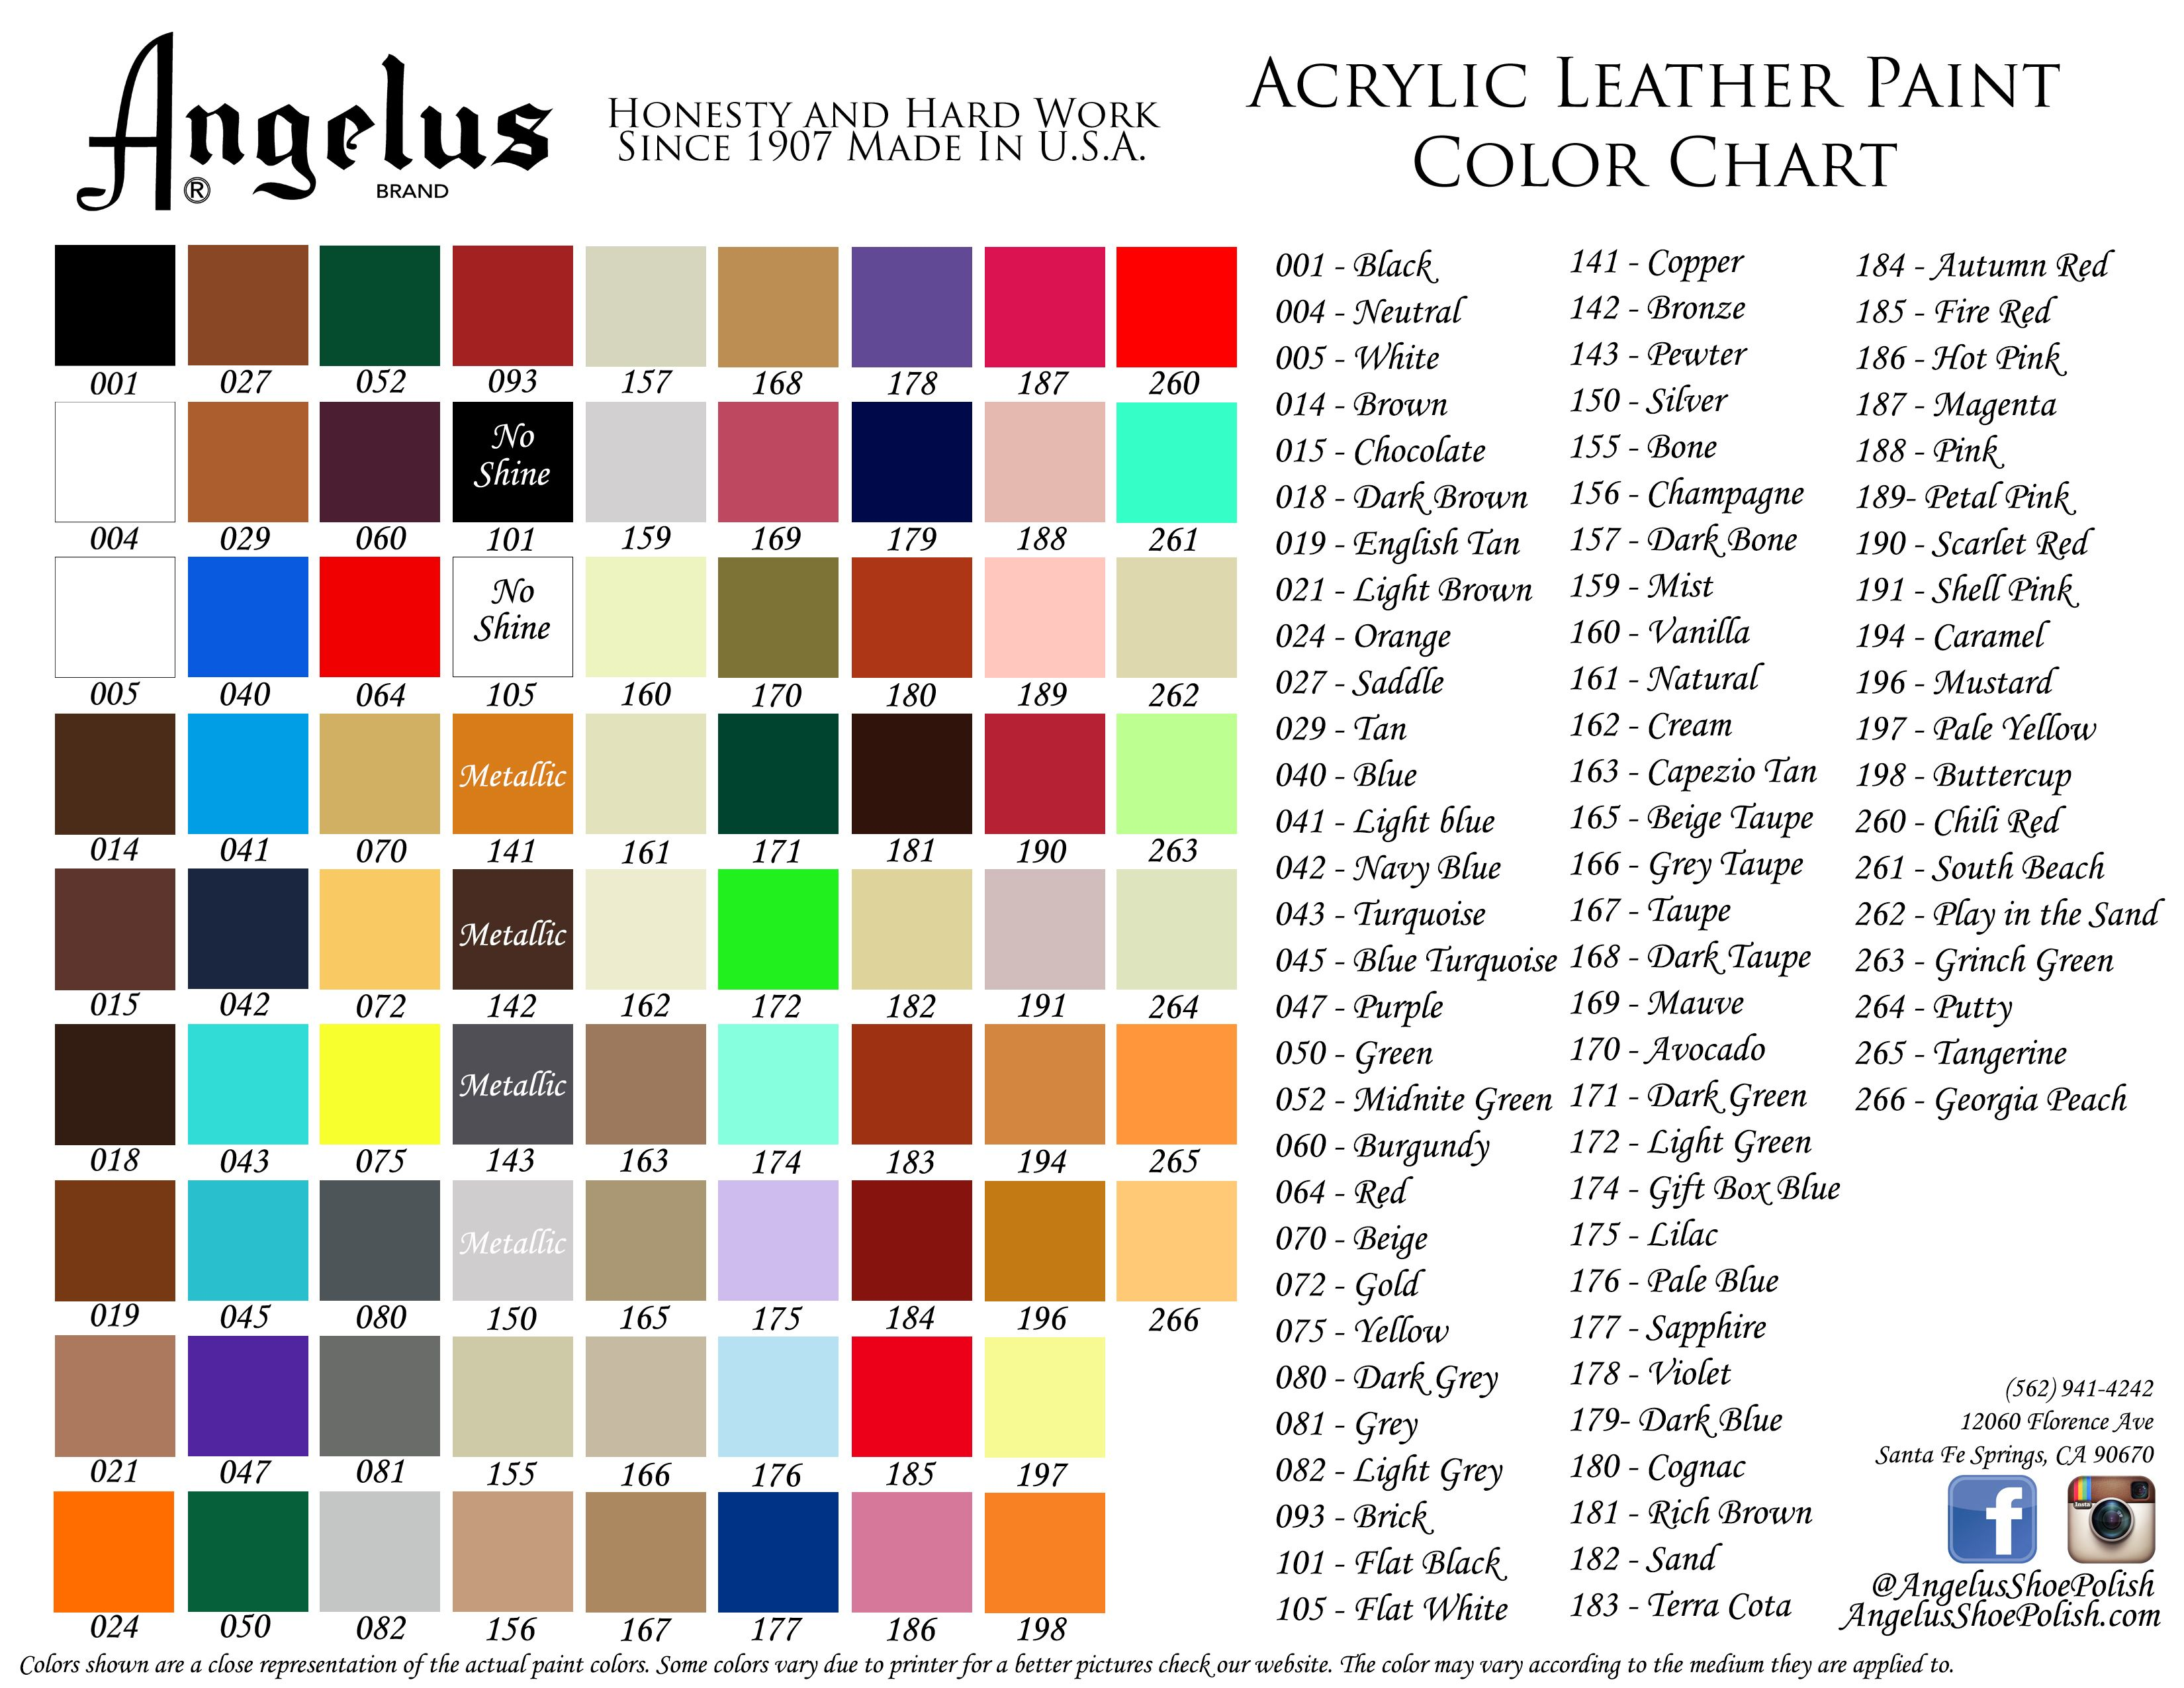 Acrylic Leather Paints For All Your Customizing Needs Angelusdirect Angelusbrand Colorchart Diy Customsnea Leather Paint Paint Color Chart Vinyl Painted